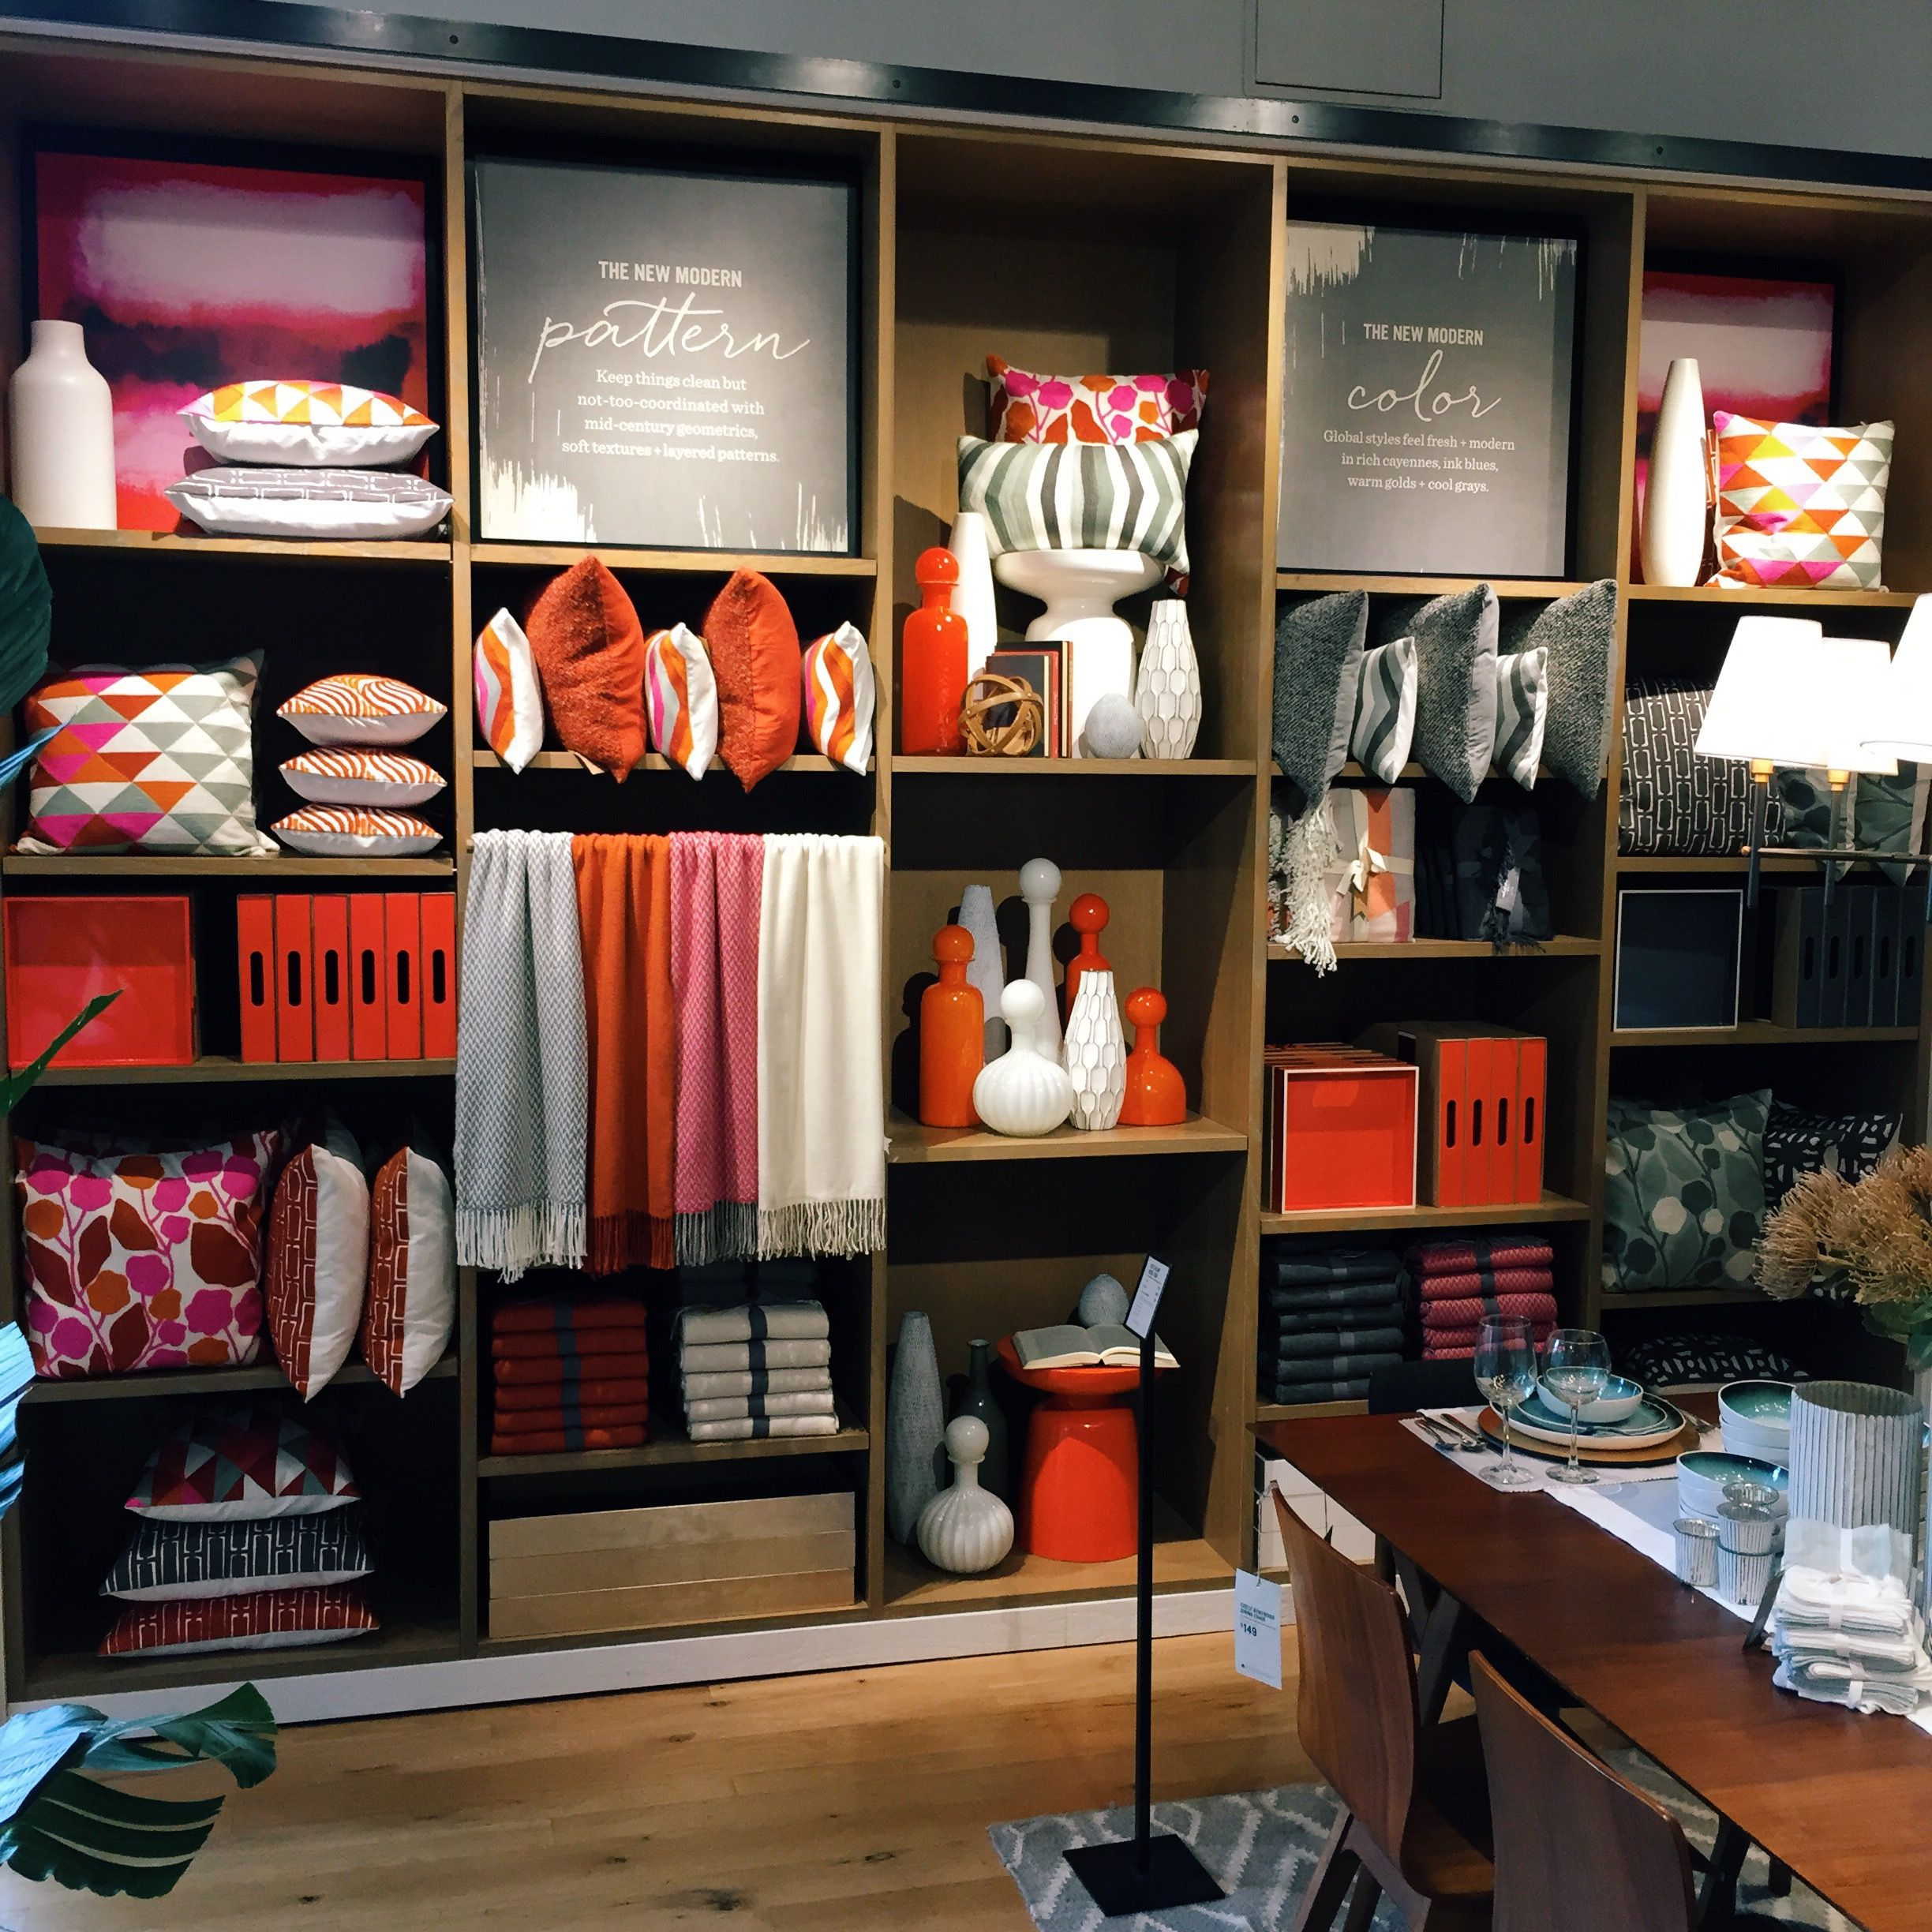 Best Store Visual Design And Merchandising Work At West Elm And This Month